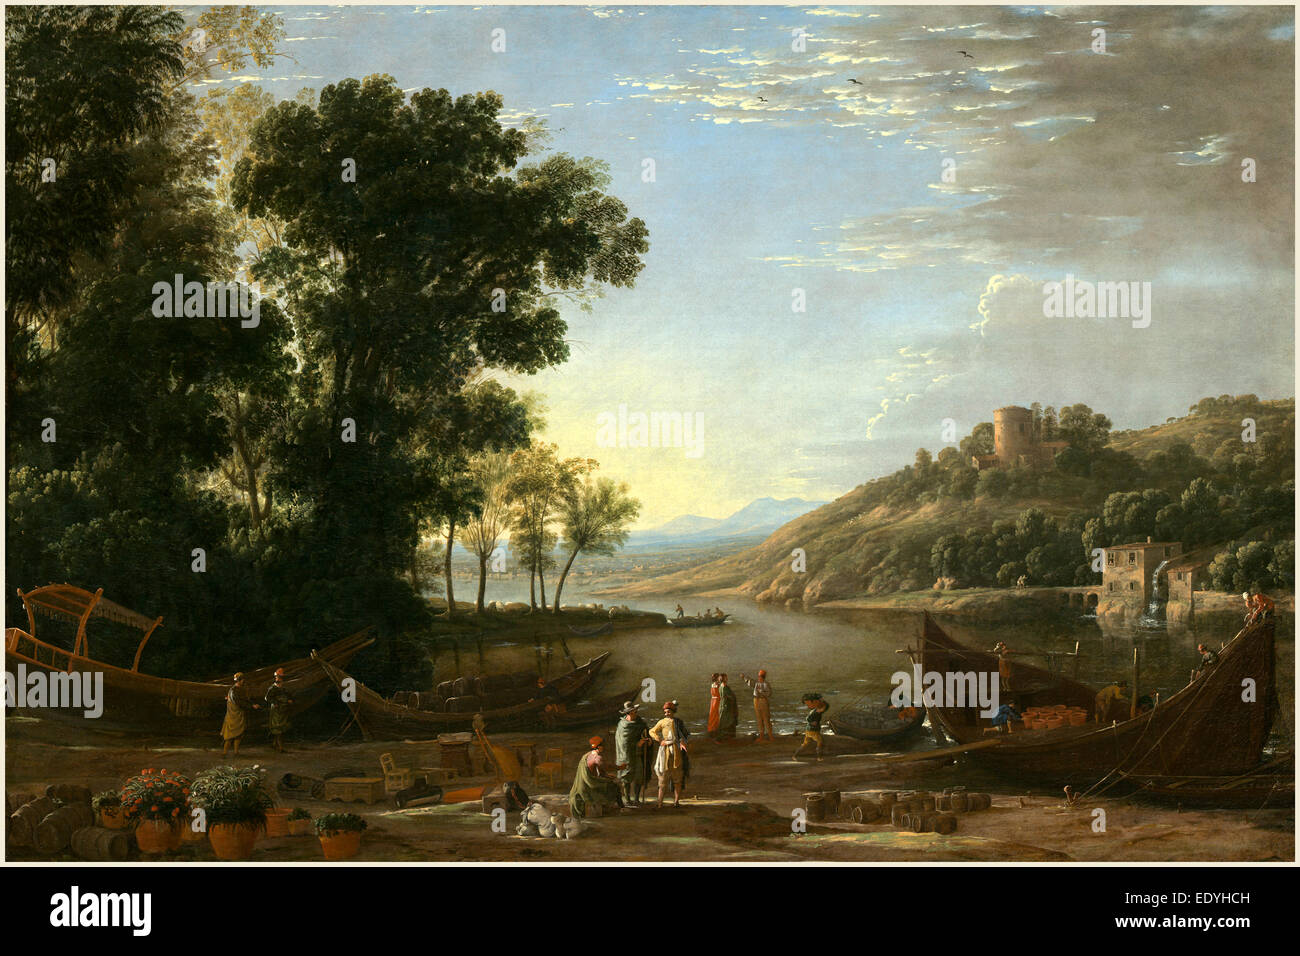 Claude Lorrain, French (1604-1605-1682), Landscape with Merchants, c. 1629, oil on canvas - Stock Image